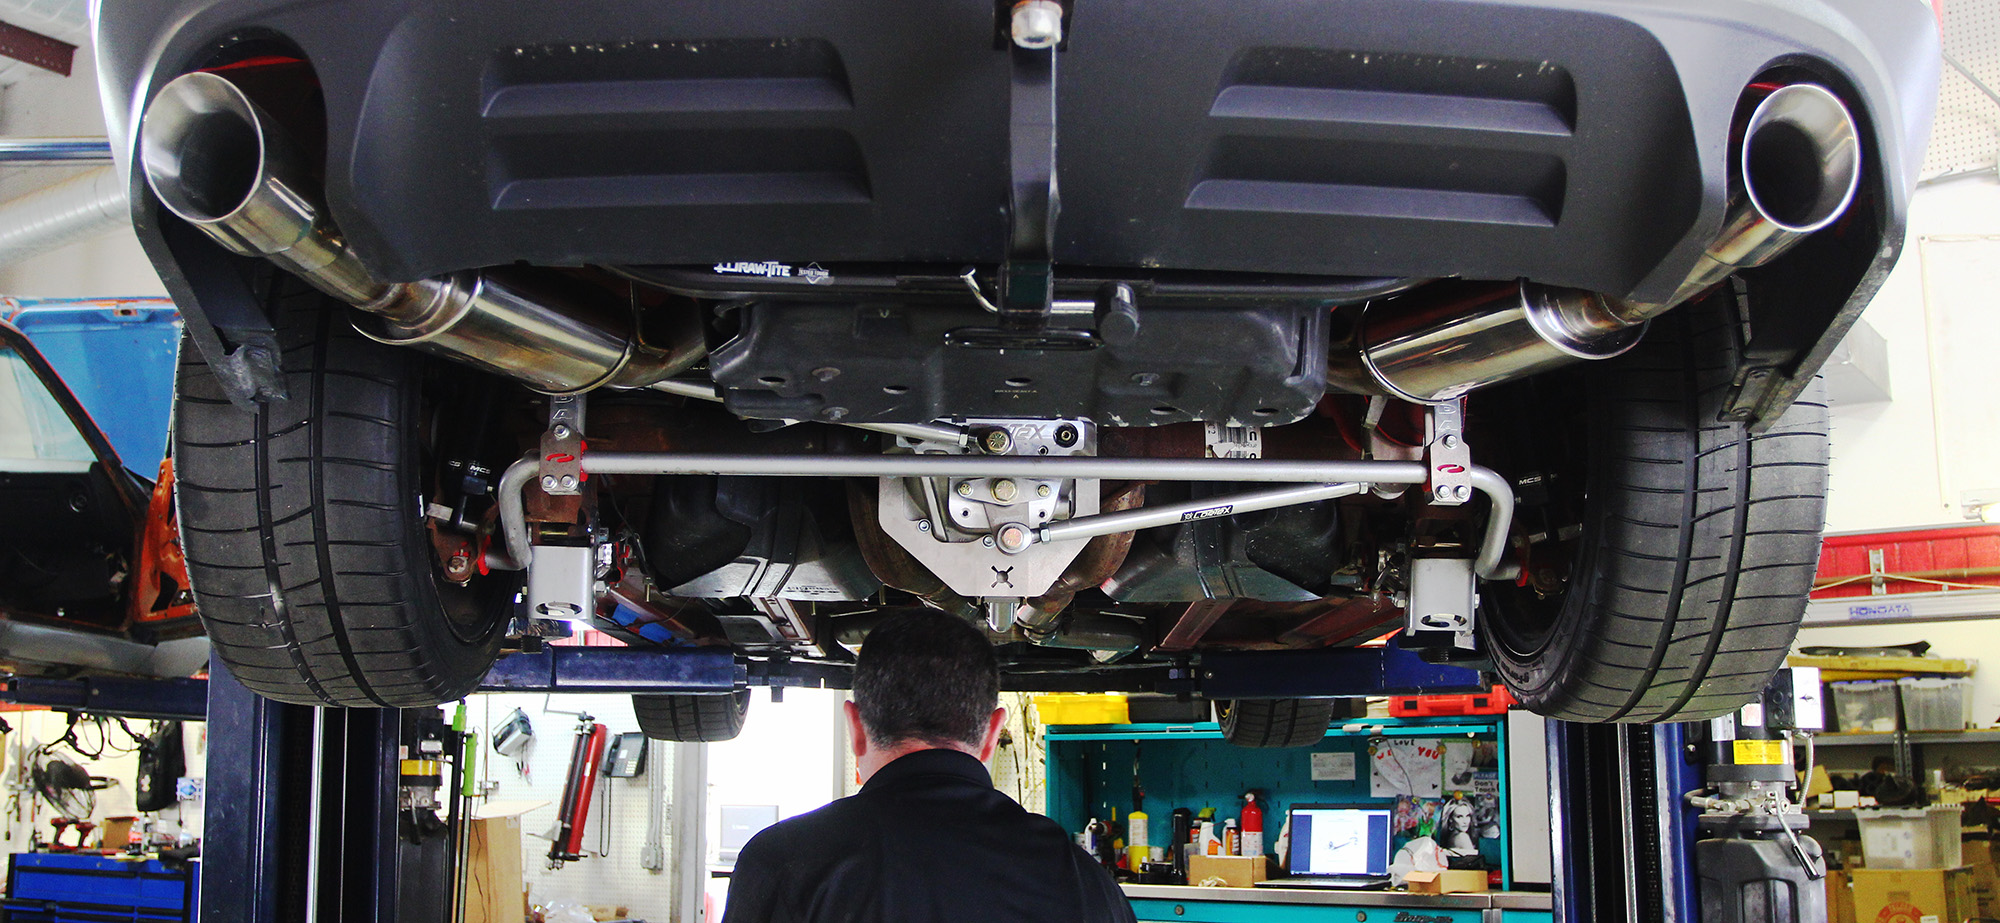 Ford Camber >> Suspension Mythbusting: Solid Axle vs. IRS | Articles | Grassroots Motorsports